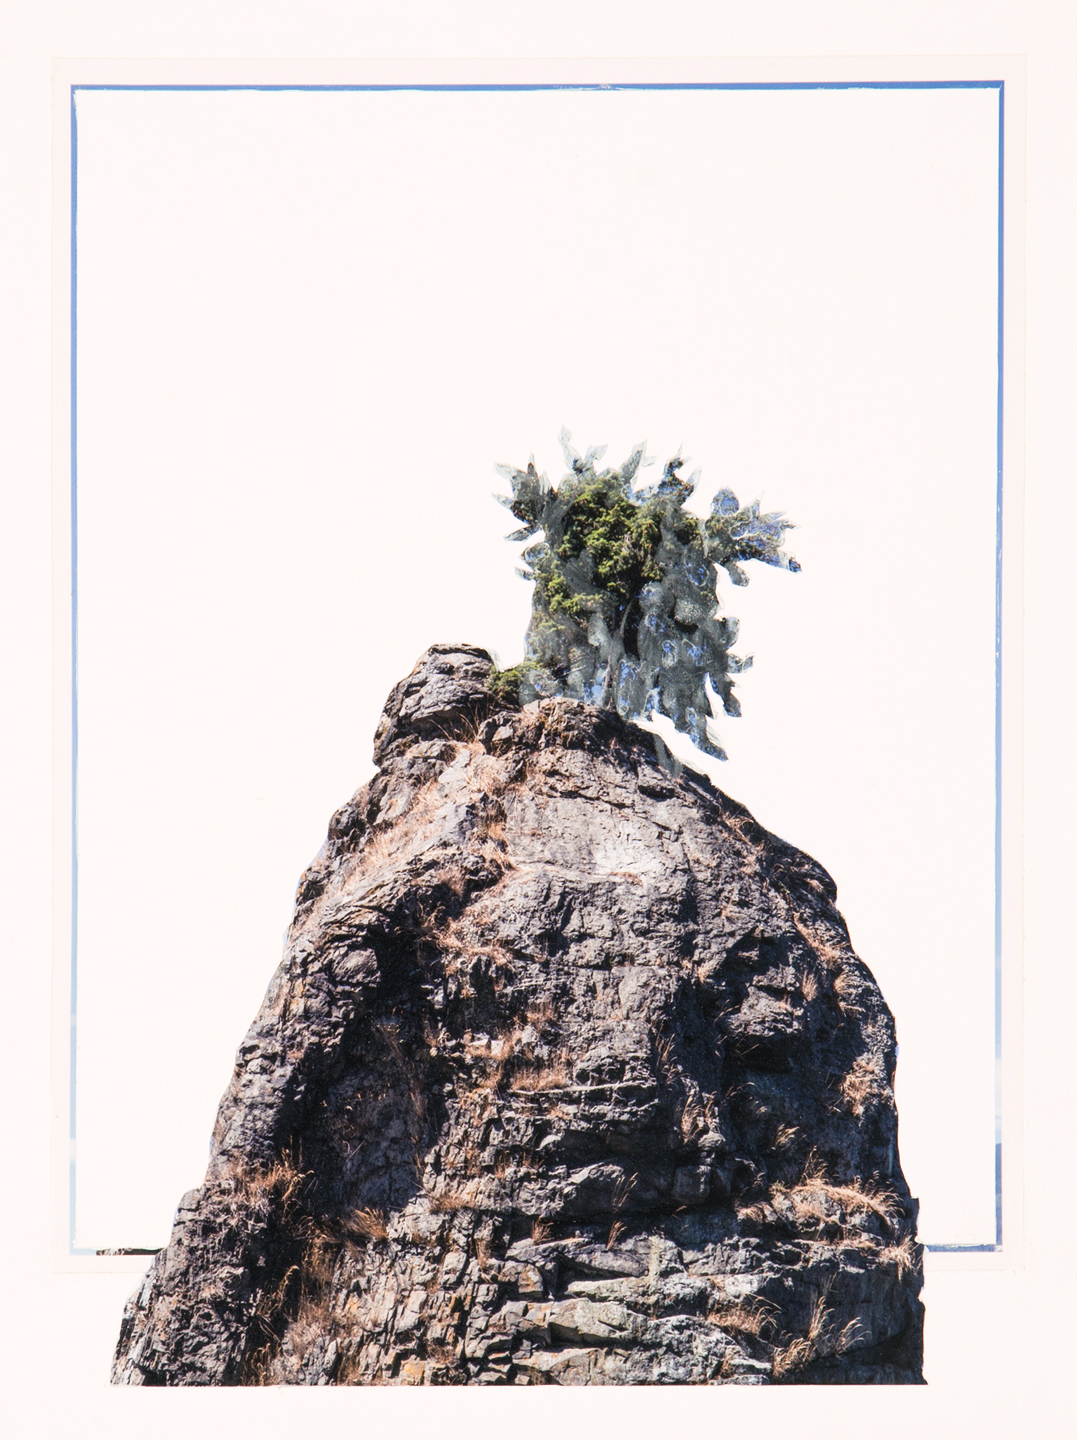 Pineapple Rock, 2017  12 x 9 inches  Acrylic and C-print on paper